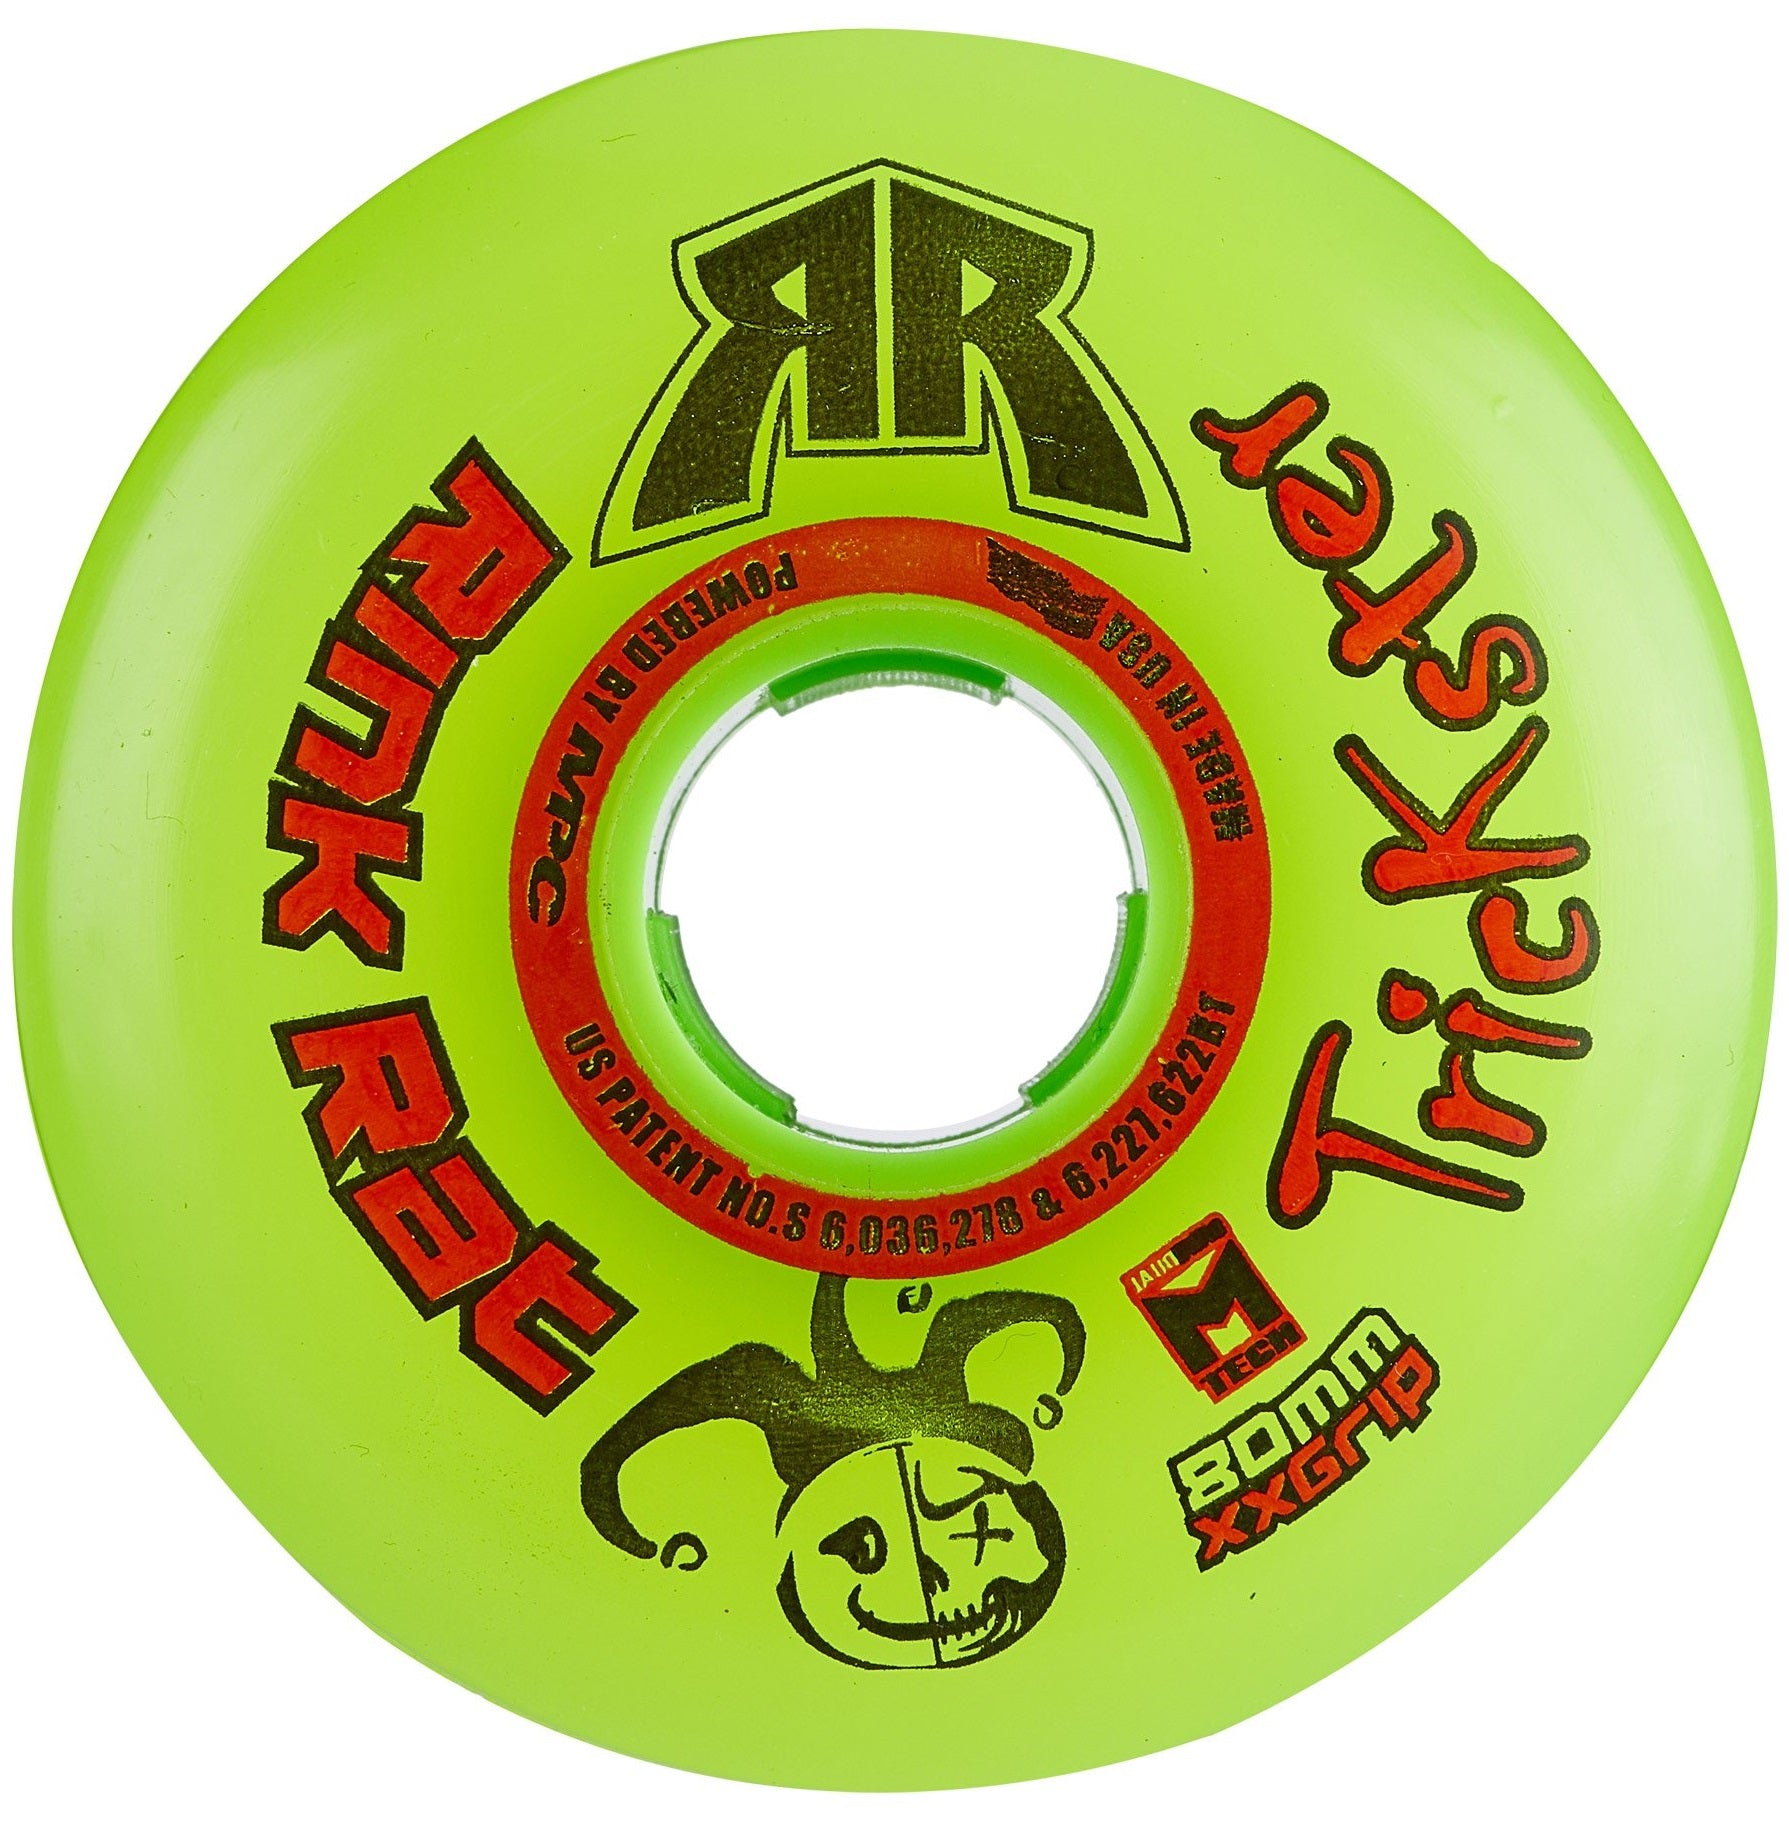 Rink Rat Trickster Wheels XX Wheels